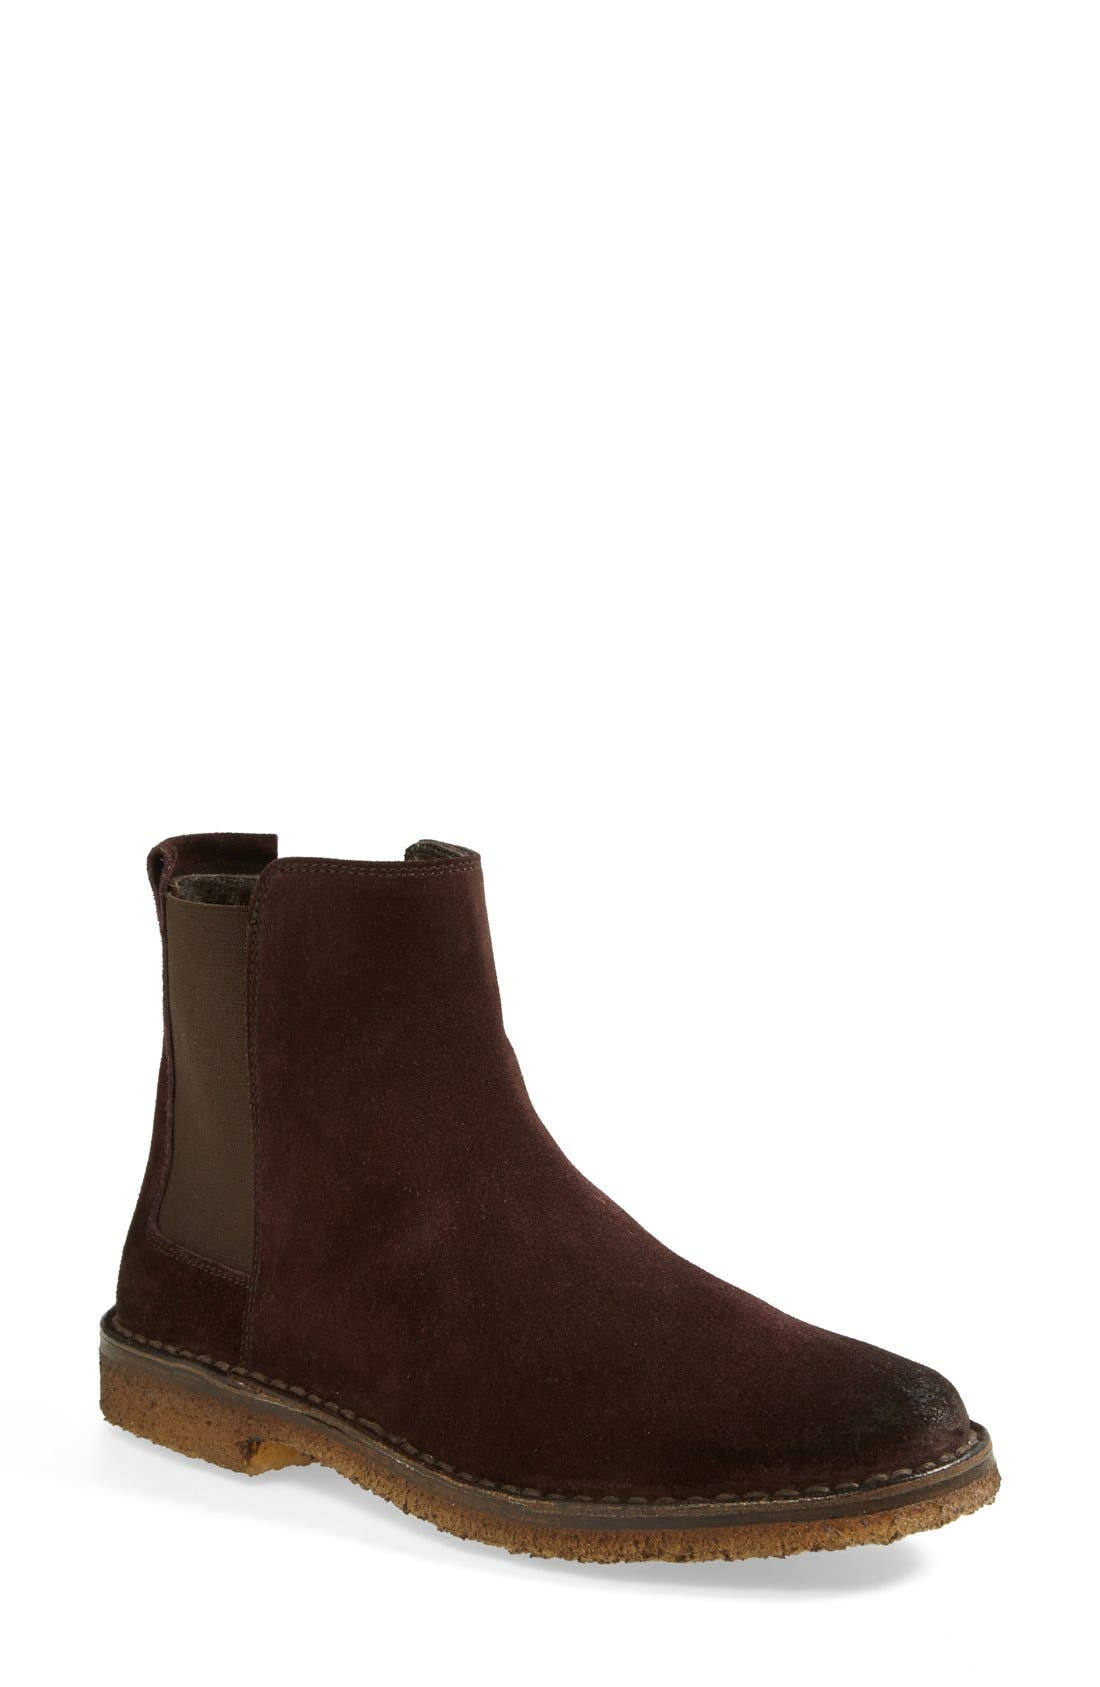 Alternate Image 1 Selected - Vince 'Cody' Genuine Shearling Lined Chelsea Bootie (Women)